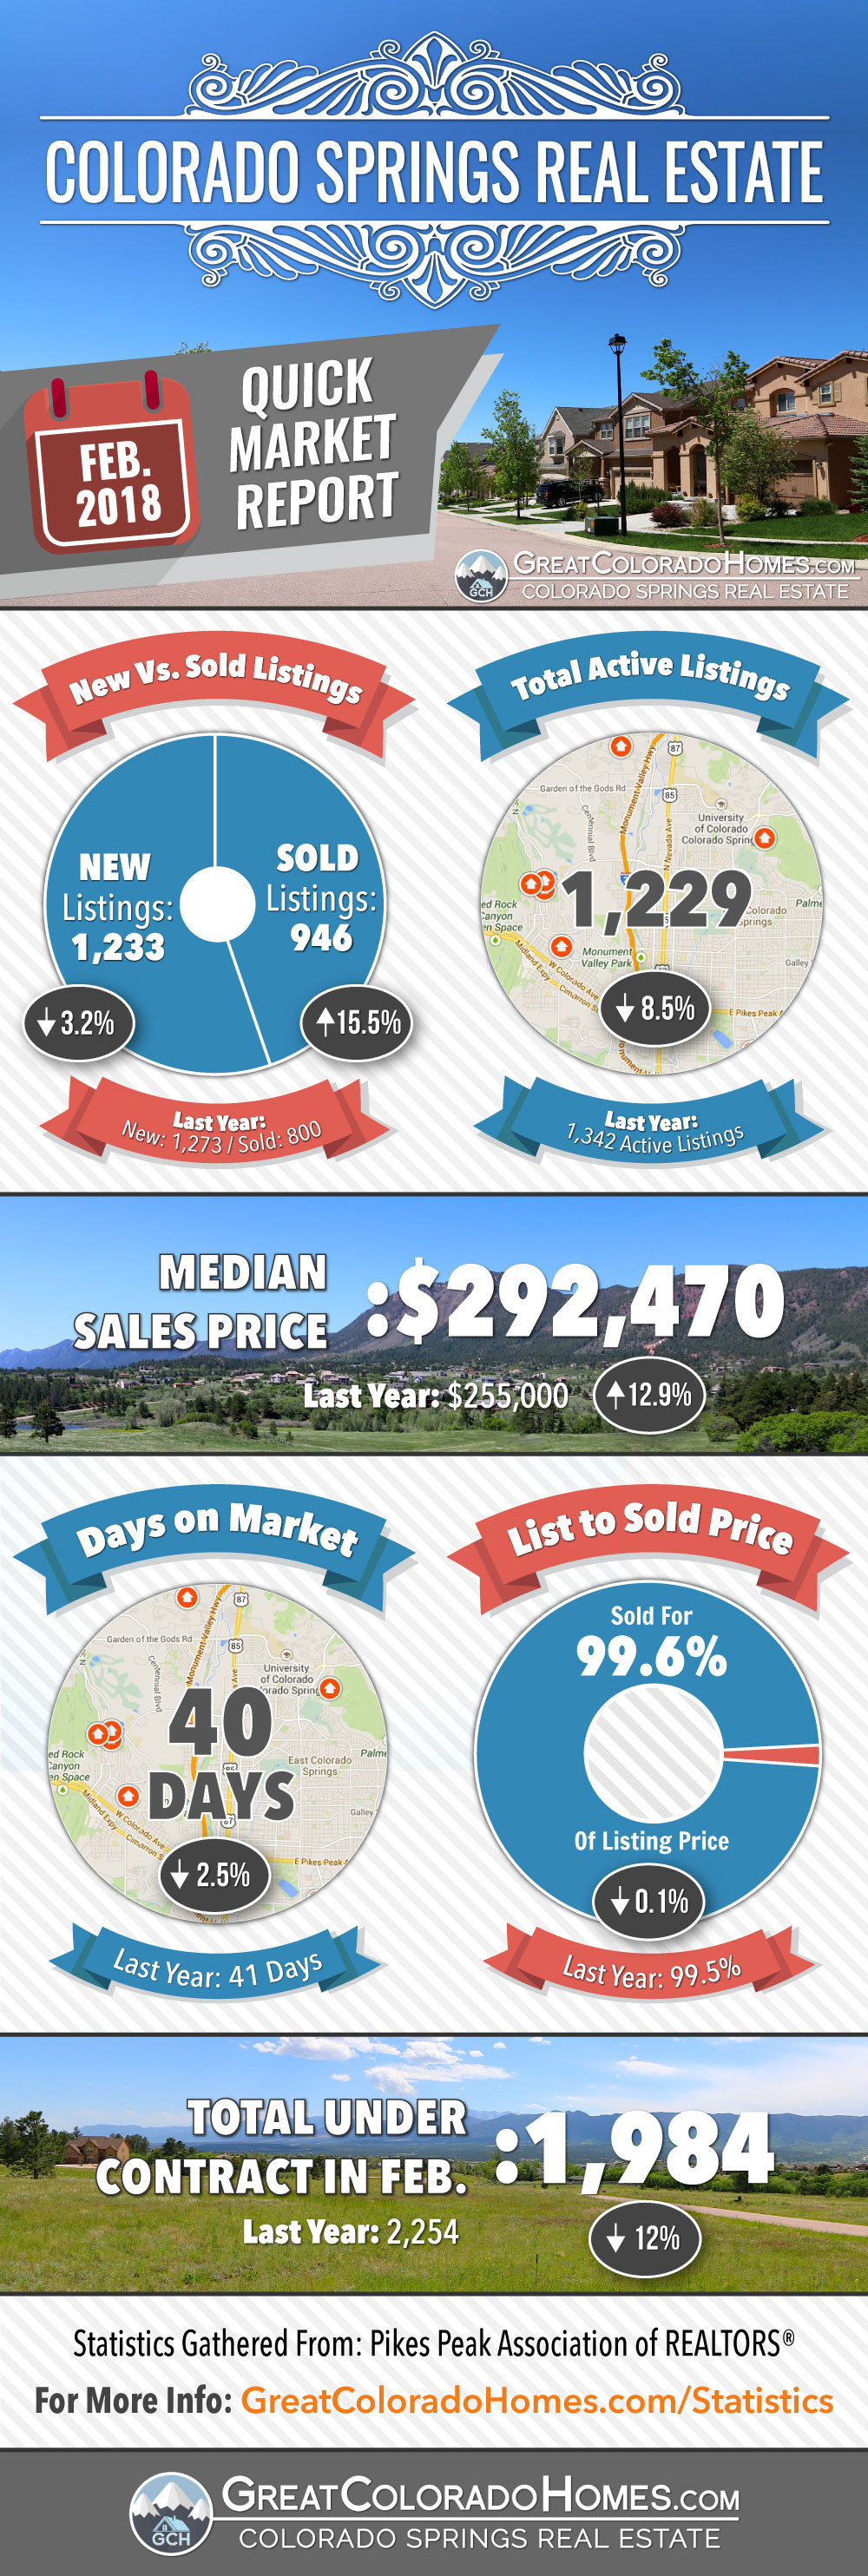 February 2018 Colorado Springs Real Estate Market Statistics Infographic